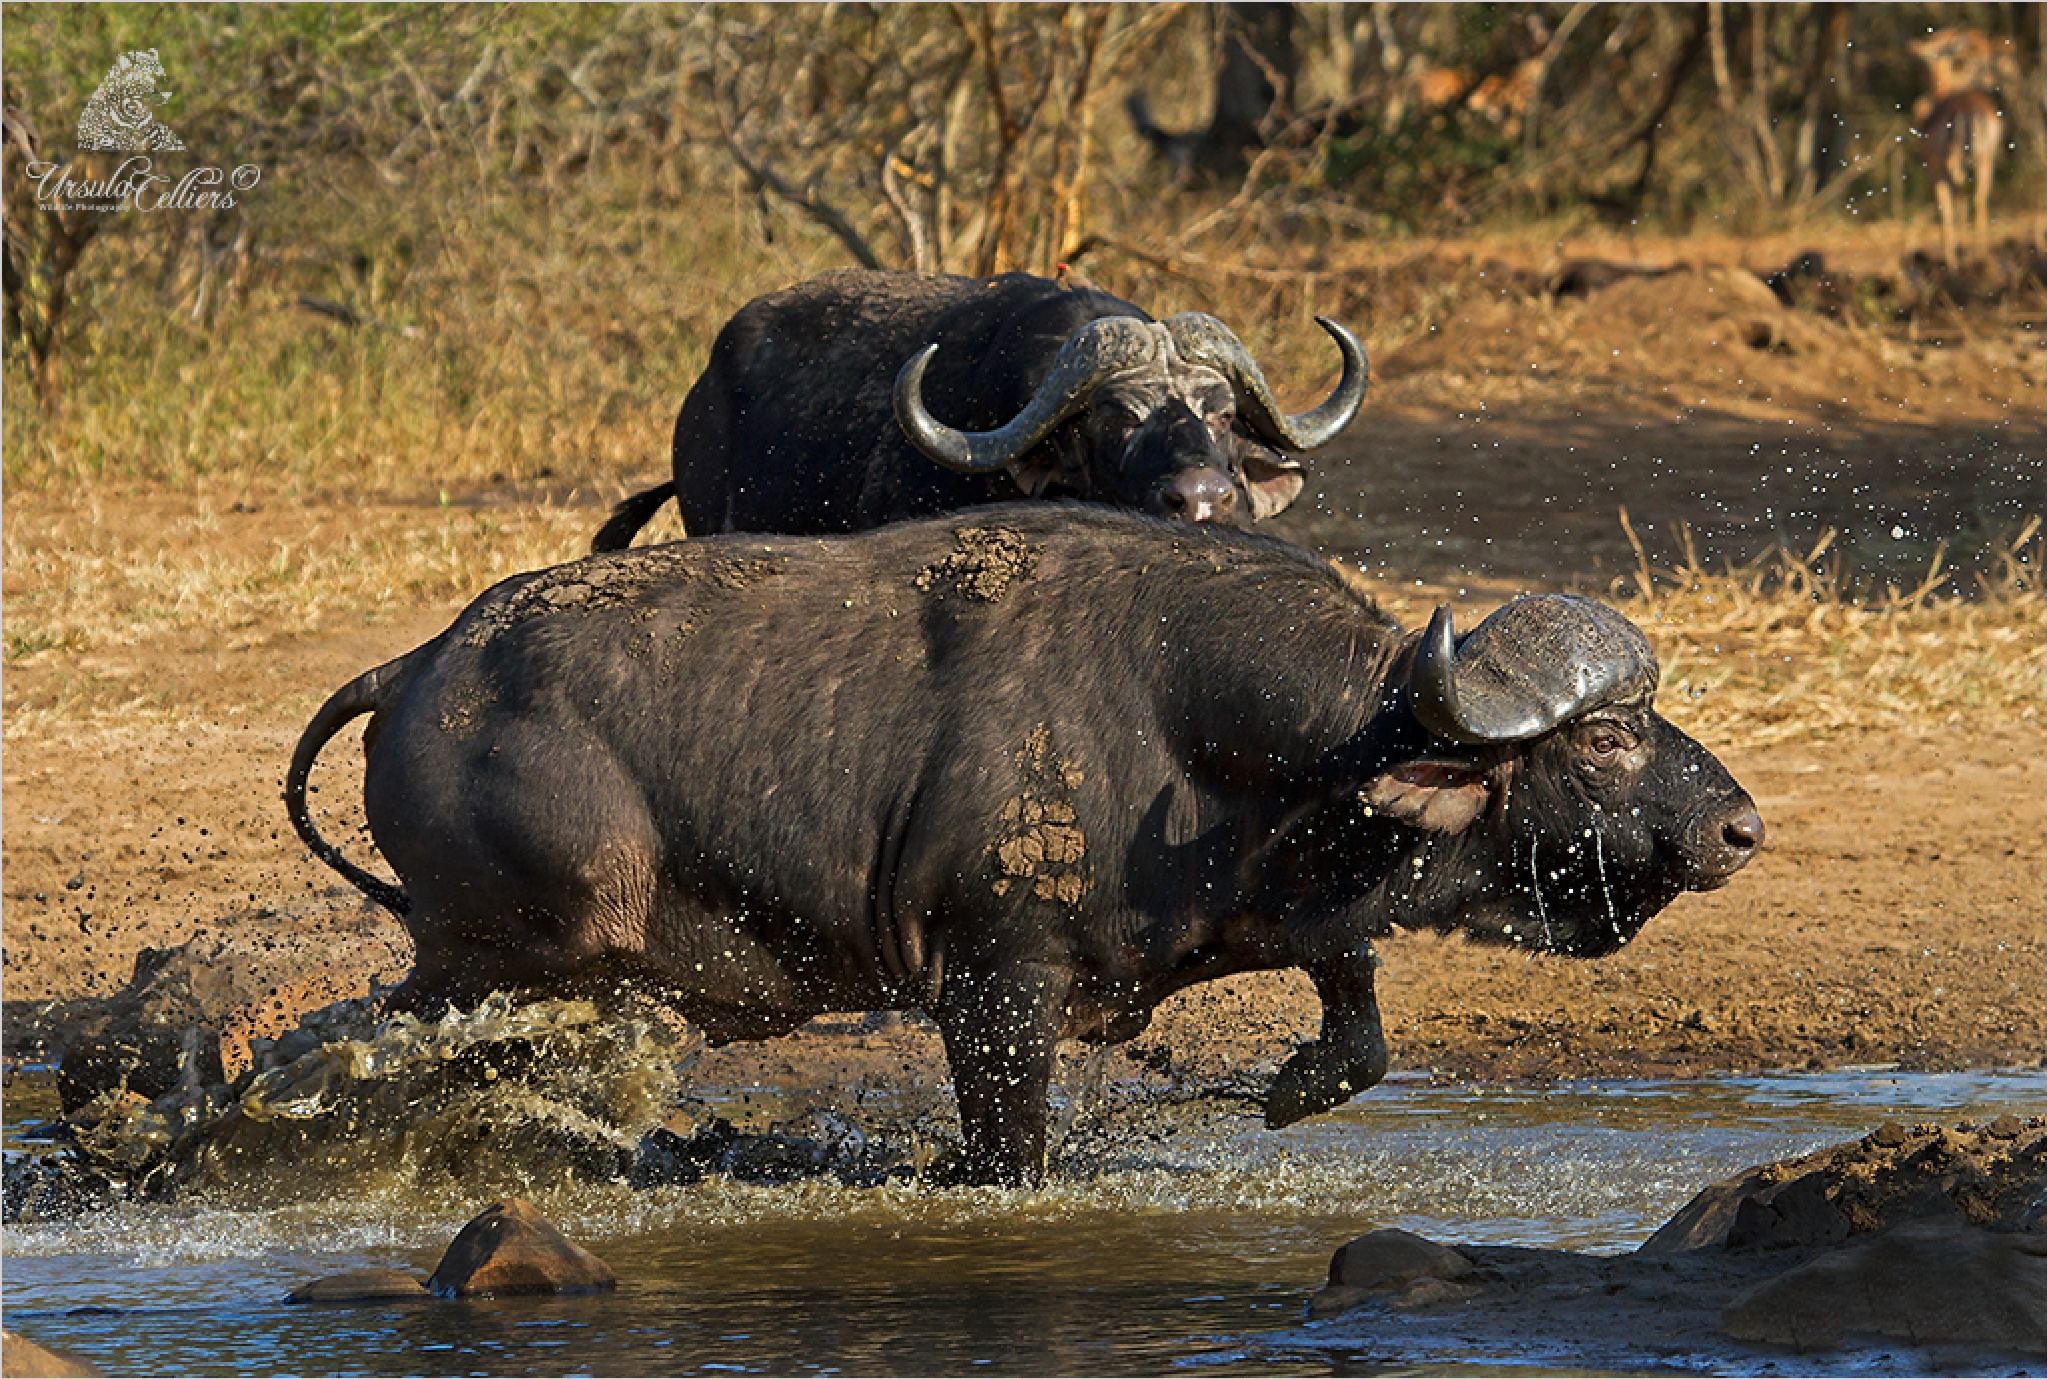 Buffalo by Ursula Celliers - Wildlife Photography